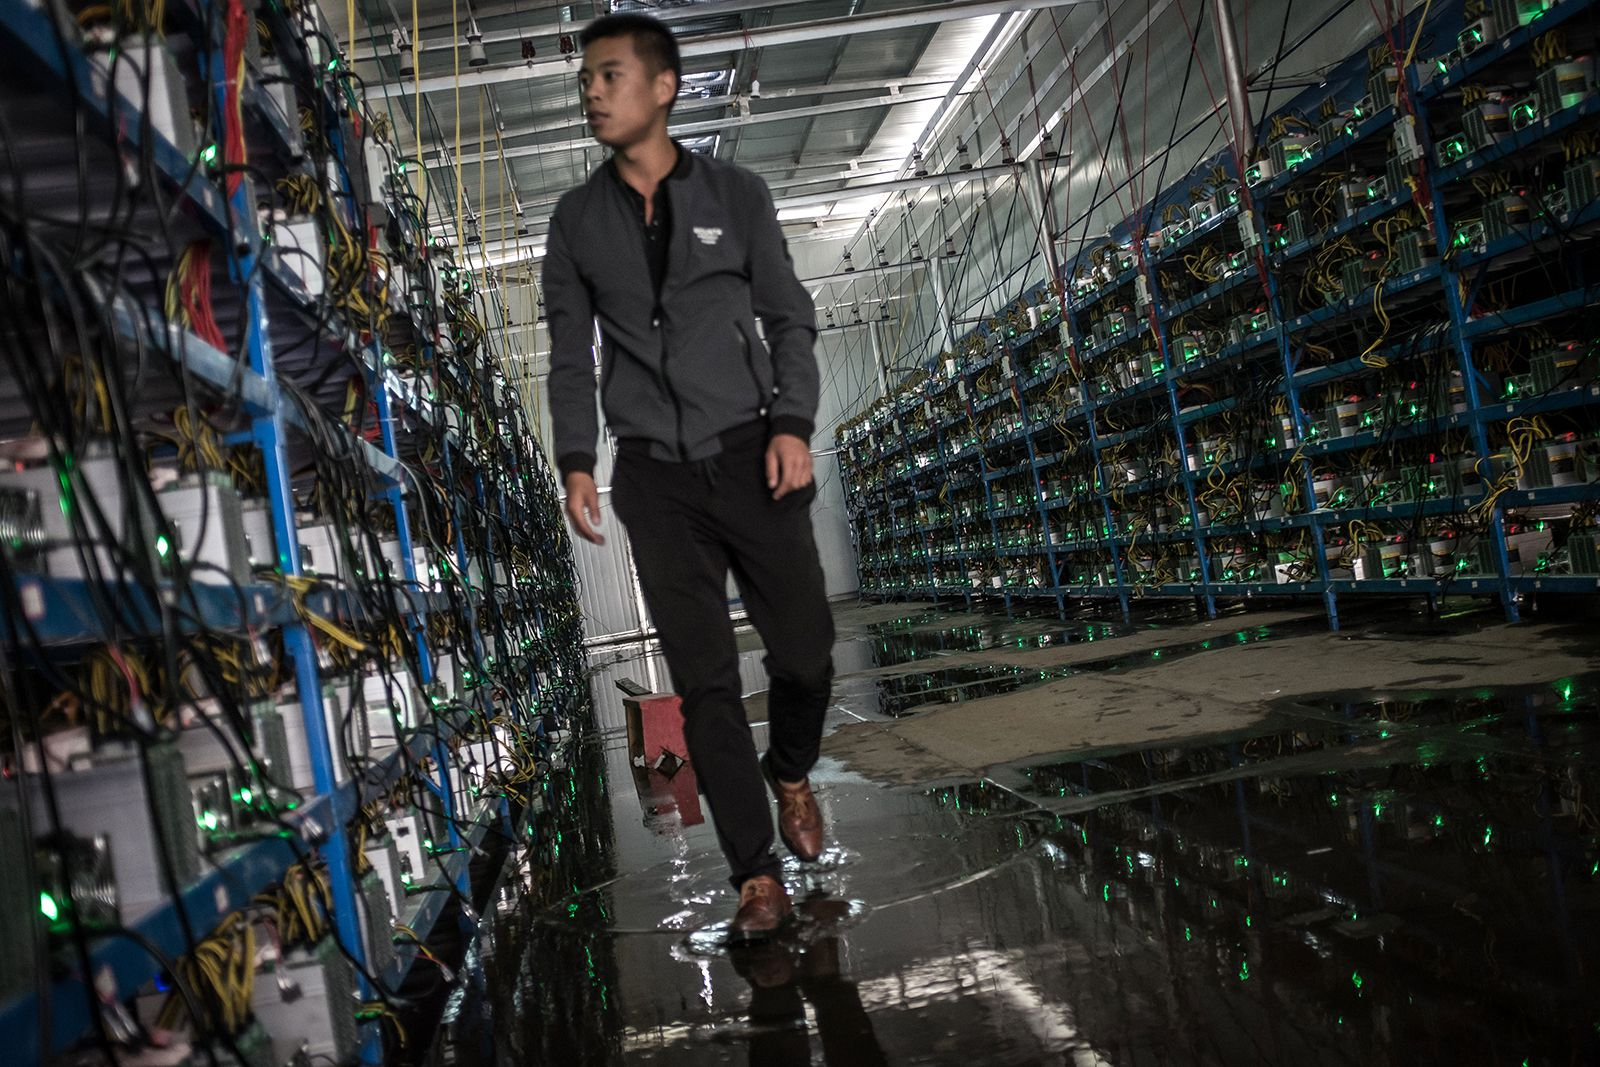 Bitcoin mining in China set for 'stricter supervision' due to carbon concerns